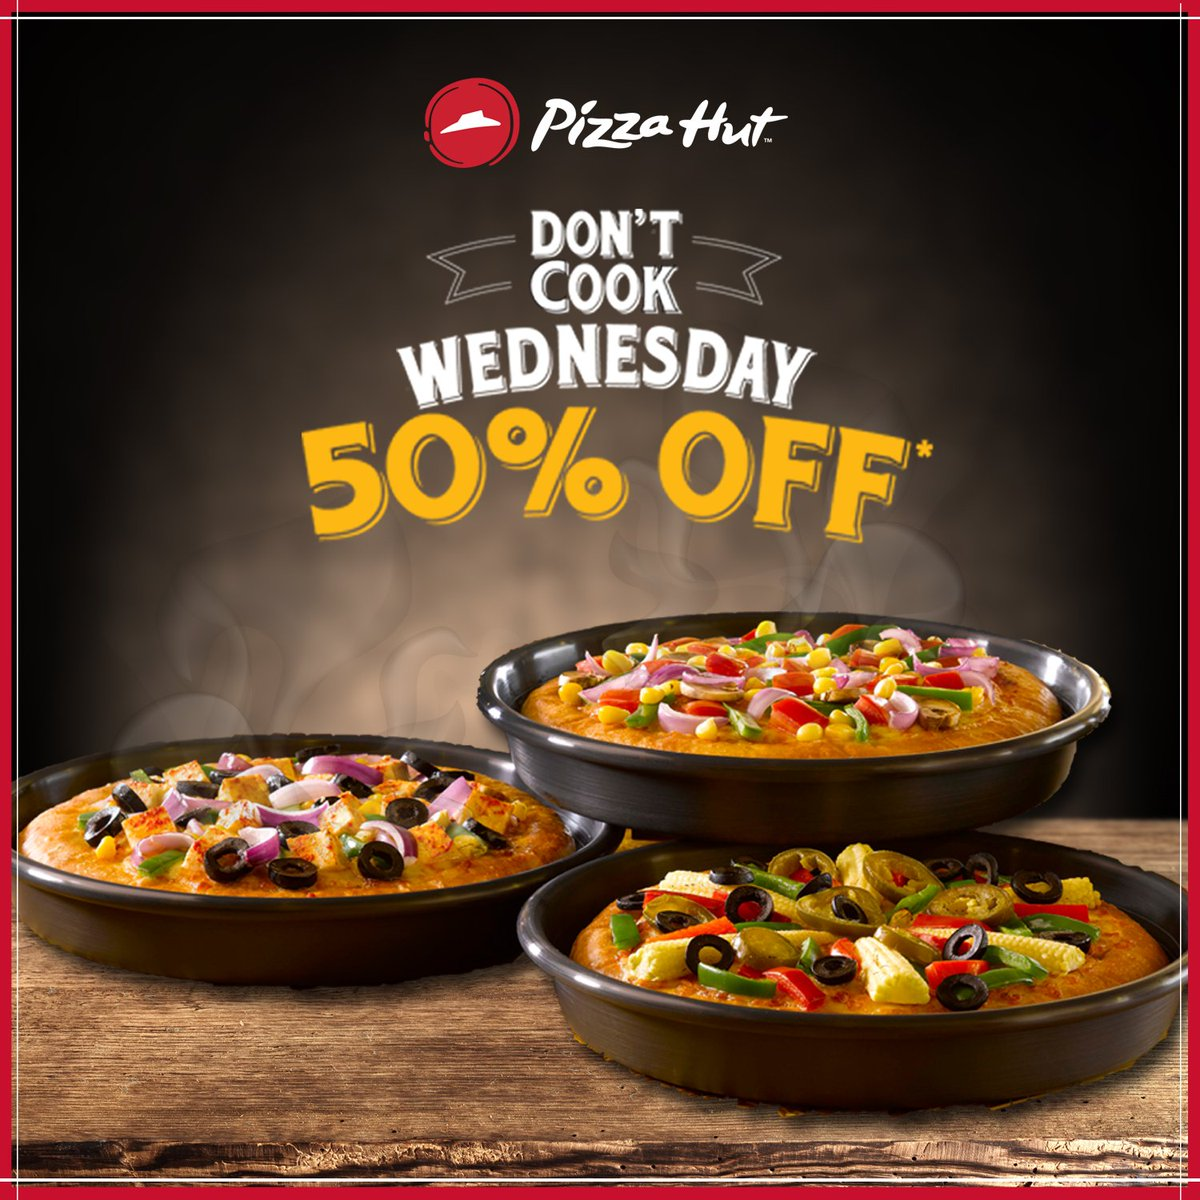 It s Wednesday So, give your cooking a break and resort to ordering the tastiest pan pizzas. DontCookWednesday https t